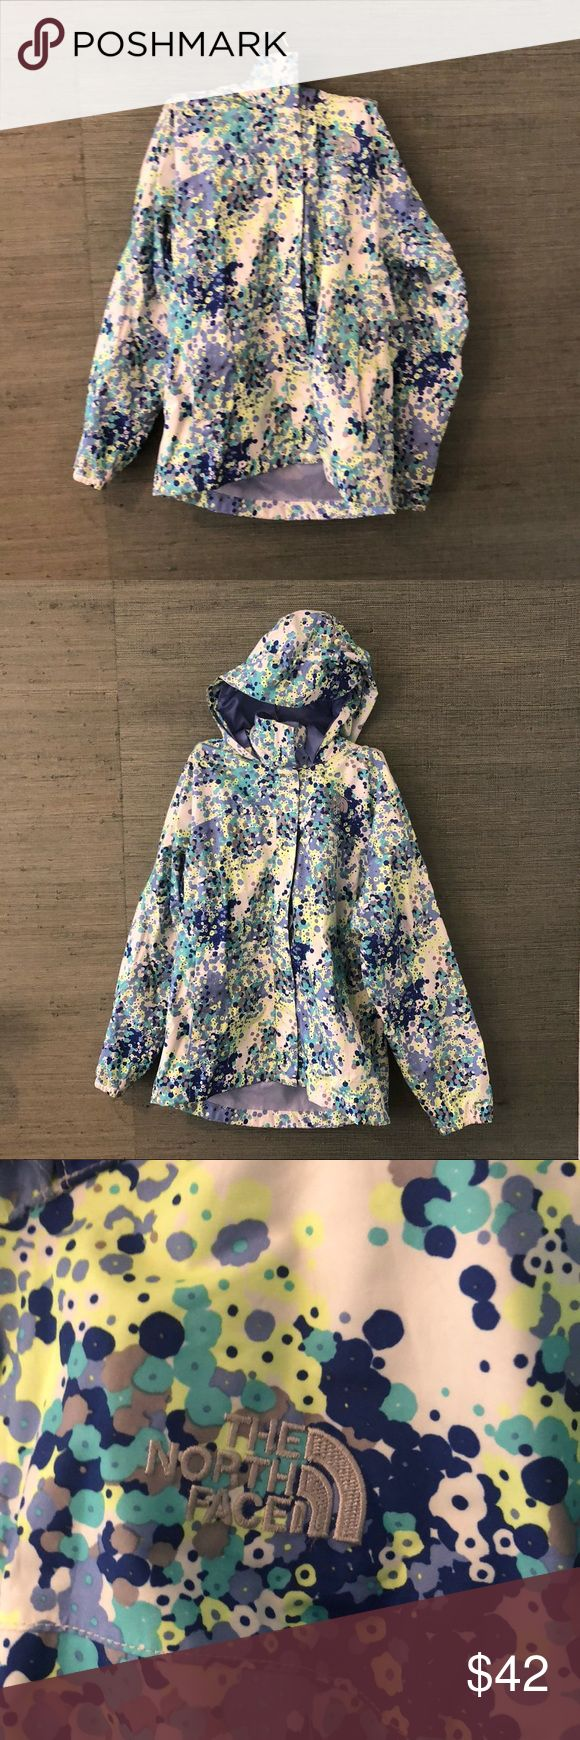 North Face Girls Floral Raincoat North Face Floral rain jacket, size LG (14/16) Girls, size XS women's. Never worn, great condition, cool floral print. North Face Jackets & Coats Raincoats #RaincoatsForWomenTheNorthFace